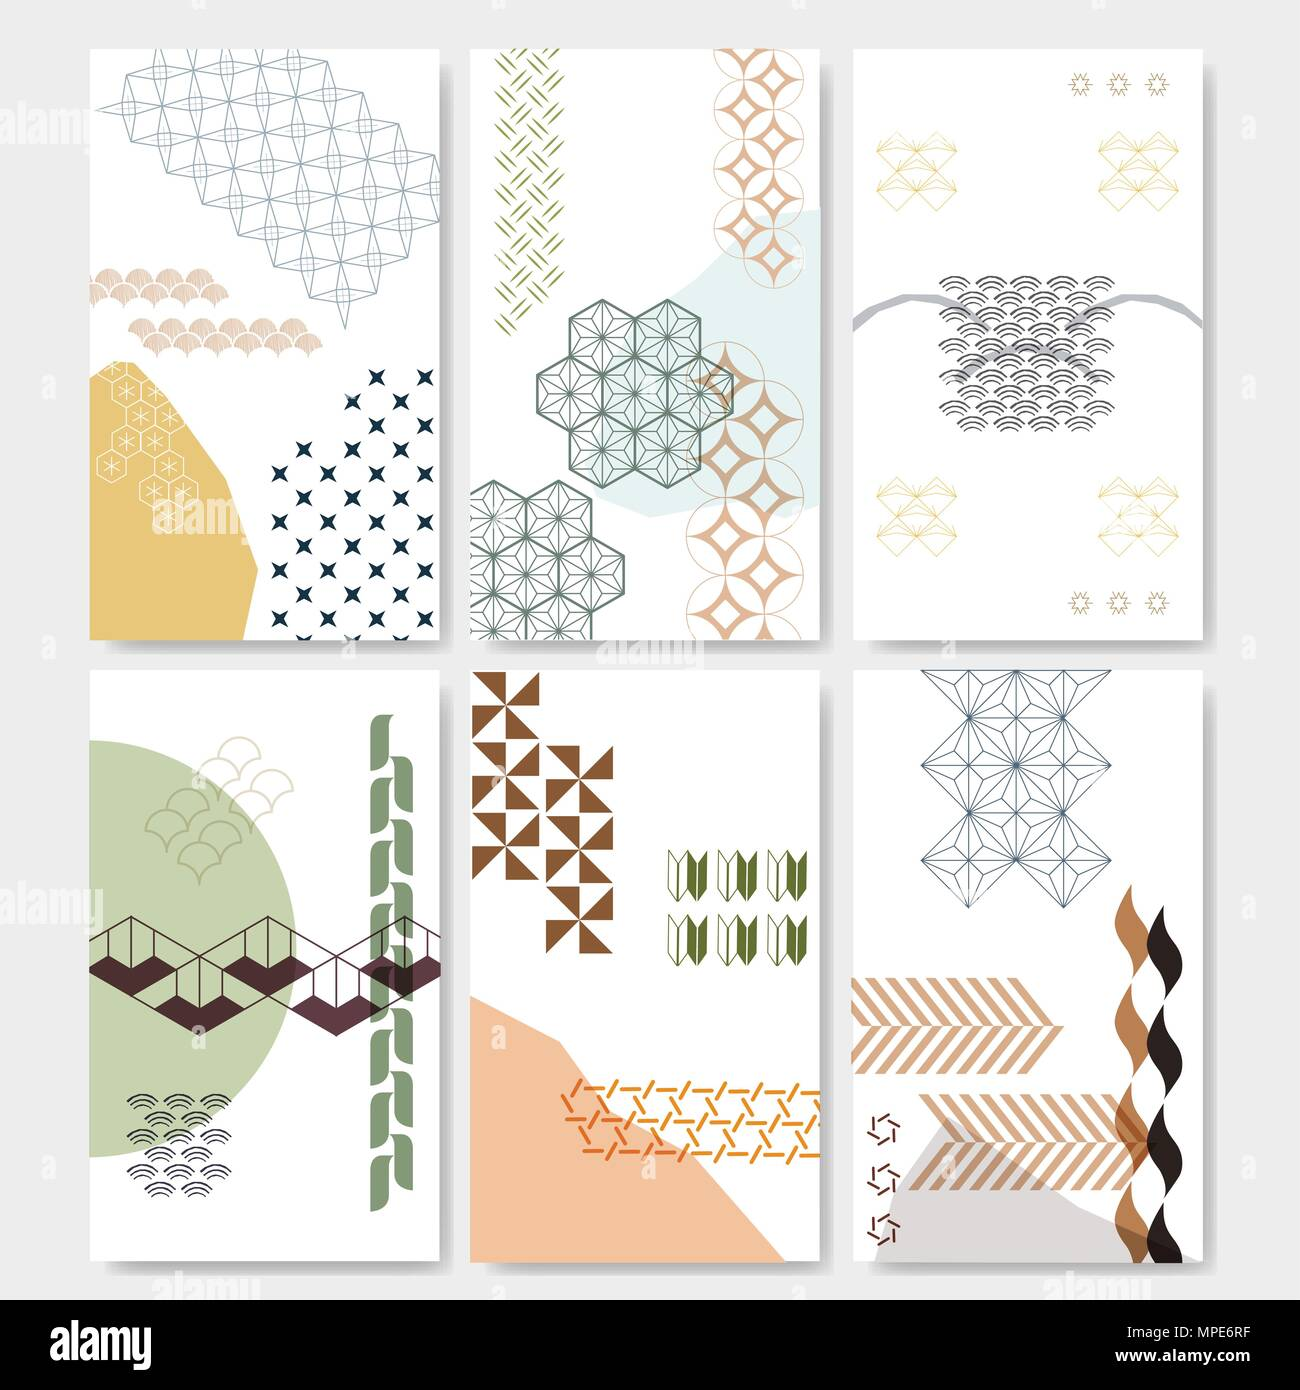 Japanese Pattern Vector With Geometric Elements For Template